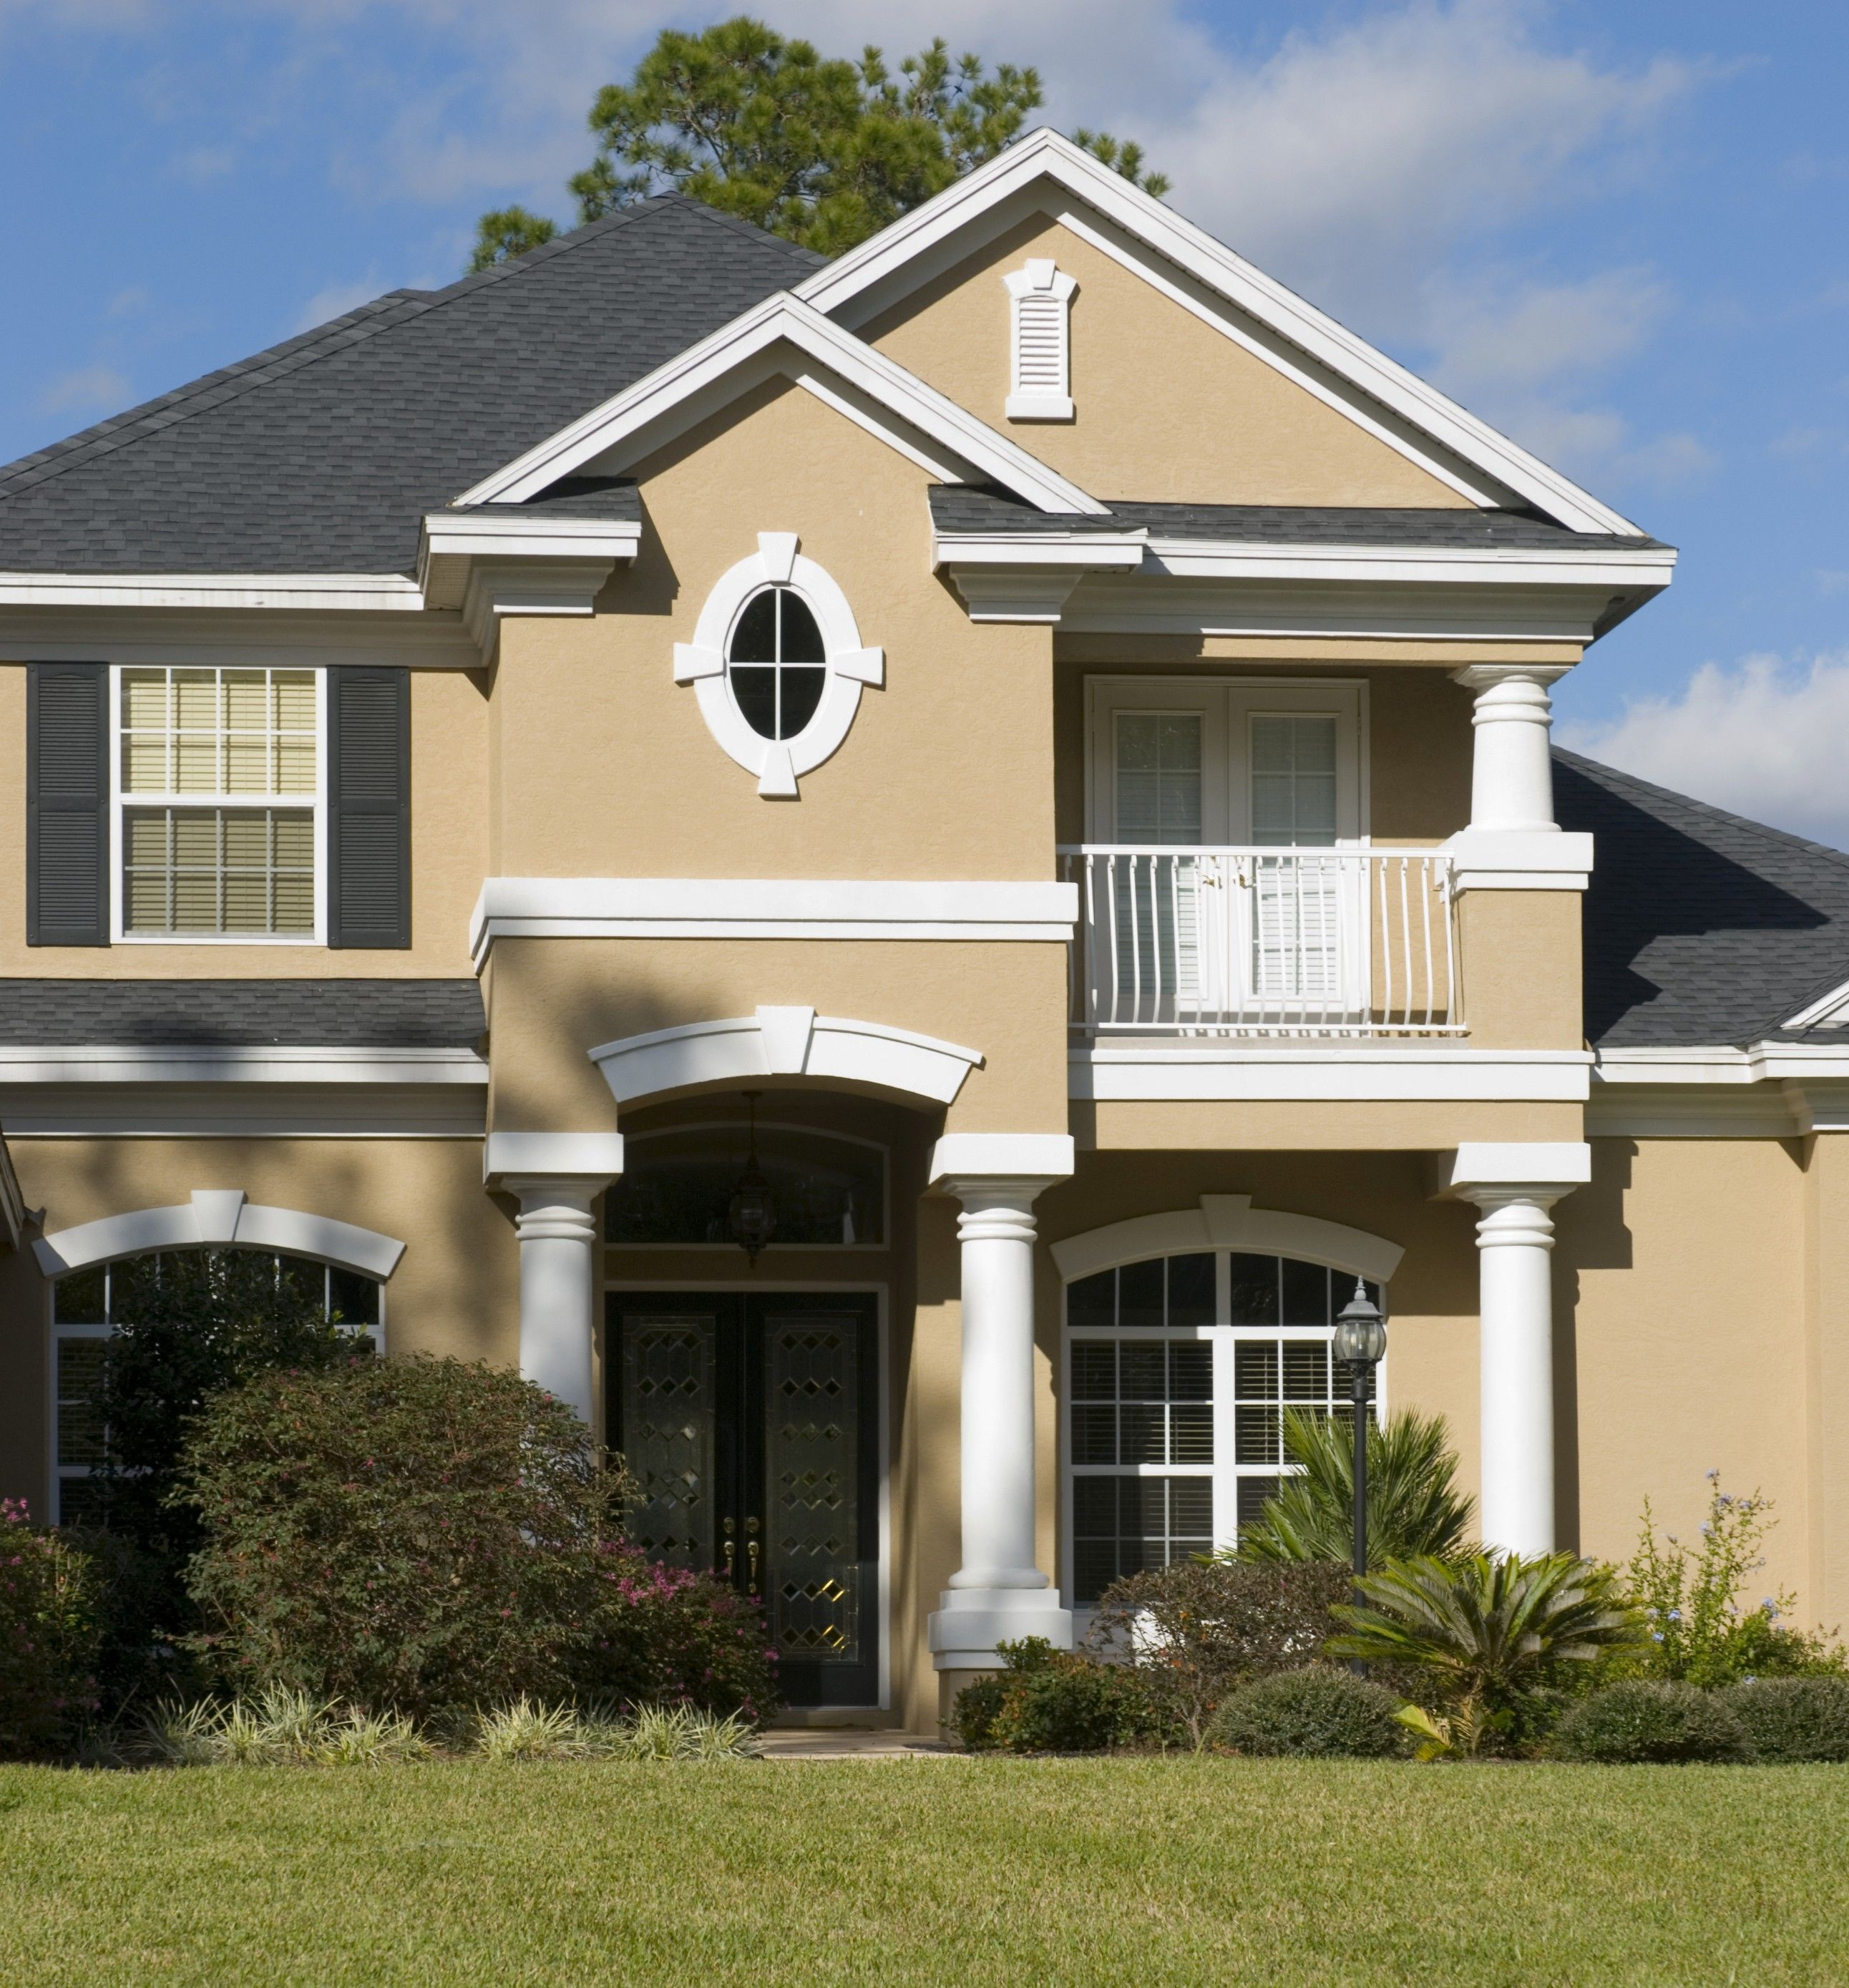 Stupendous Exterior House Colors Color Chemistry And House Paint Largest Home Design Picture Inspirations Pitcheantrous